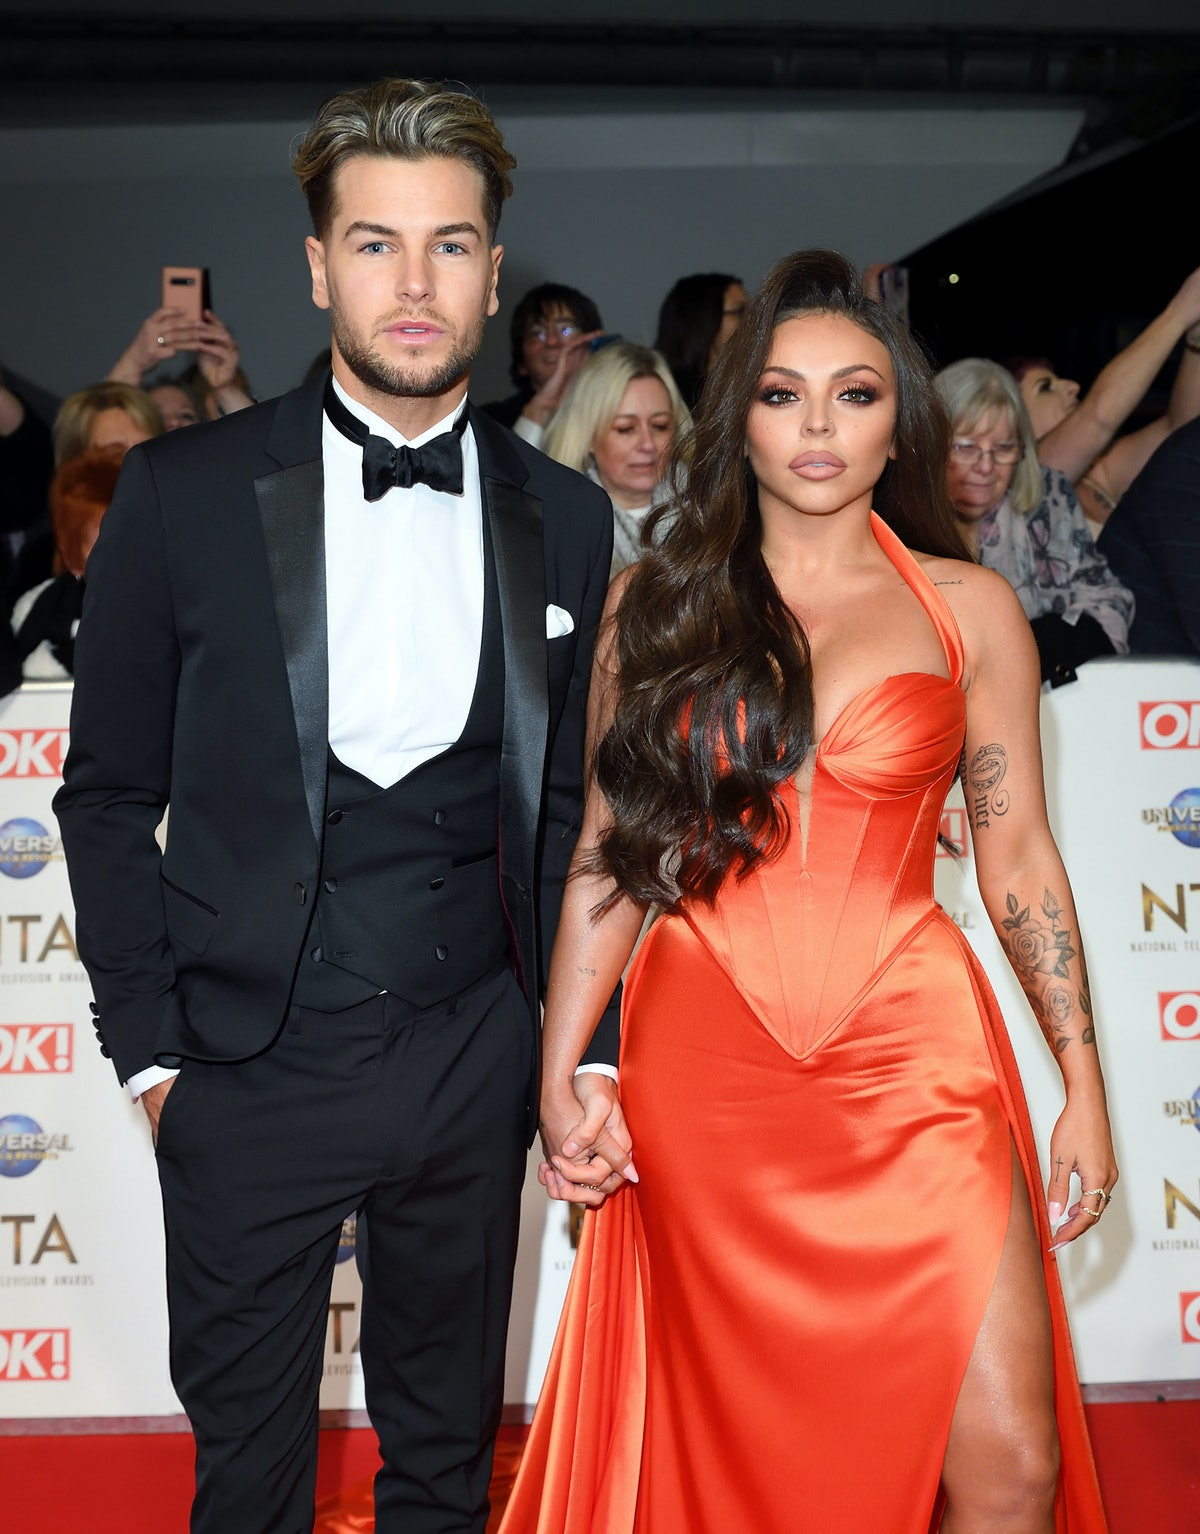 LONDON, ENGLAND - JANUARY 28: Chris Hughes and Jesy Nelson attend the National Television Awards 2020 at The O2 Arena on January 28, 2020 in London, England. (Photo by Karwai Tang/WireImage)